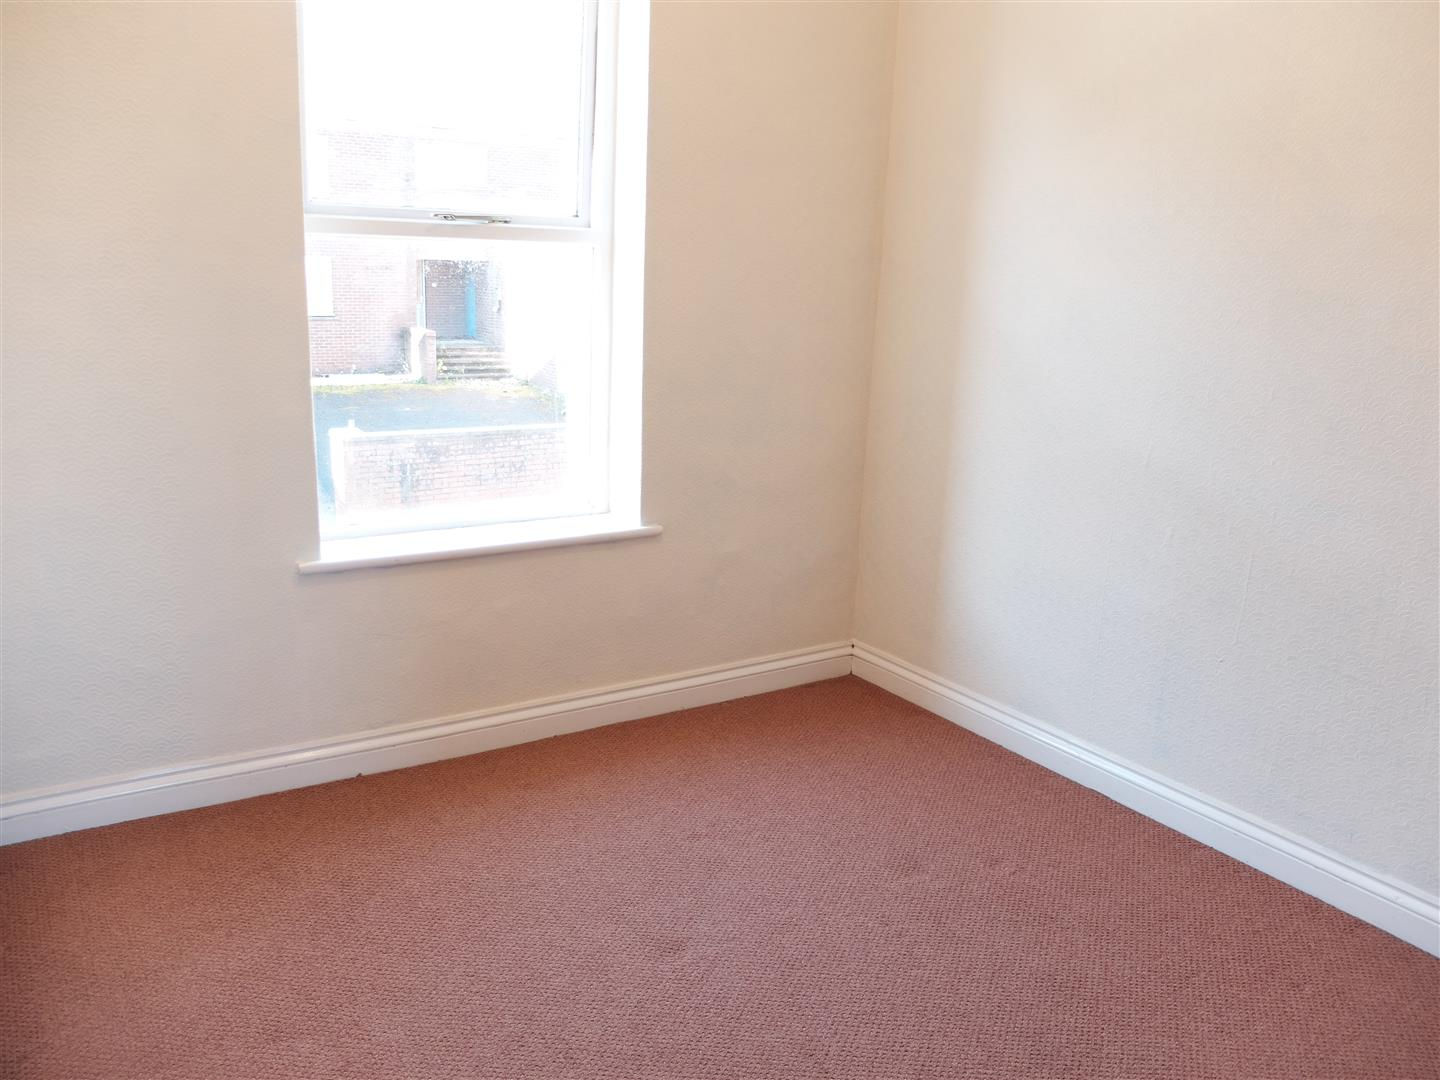 2 Bedrooms House - Terraced For Sale 5 Silloth Street Carlisle 75,000